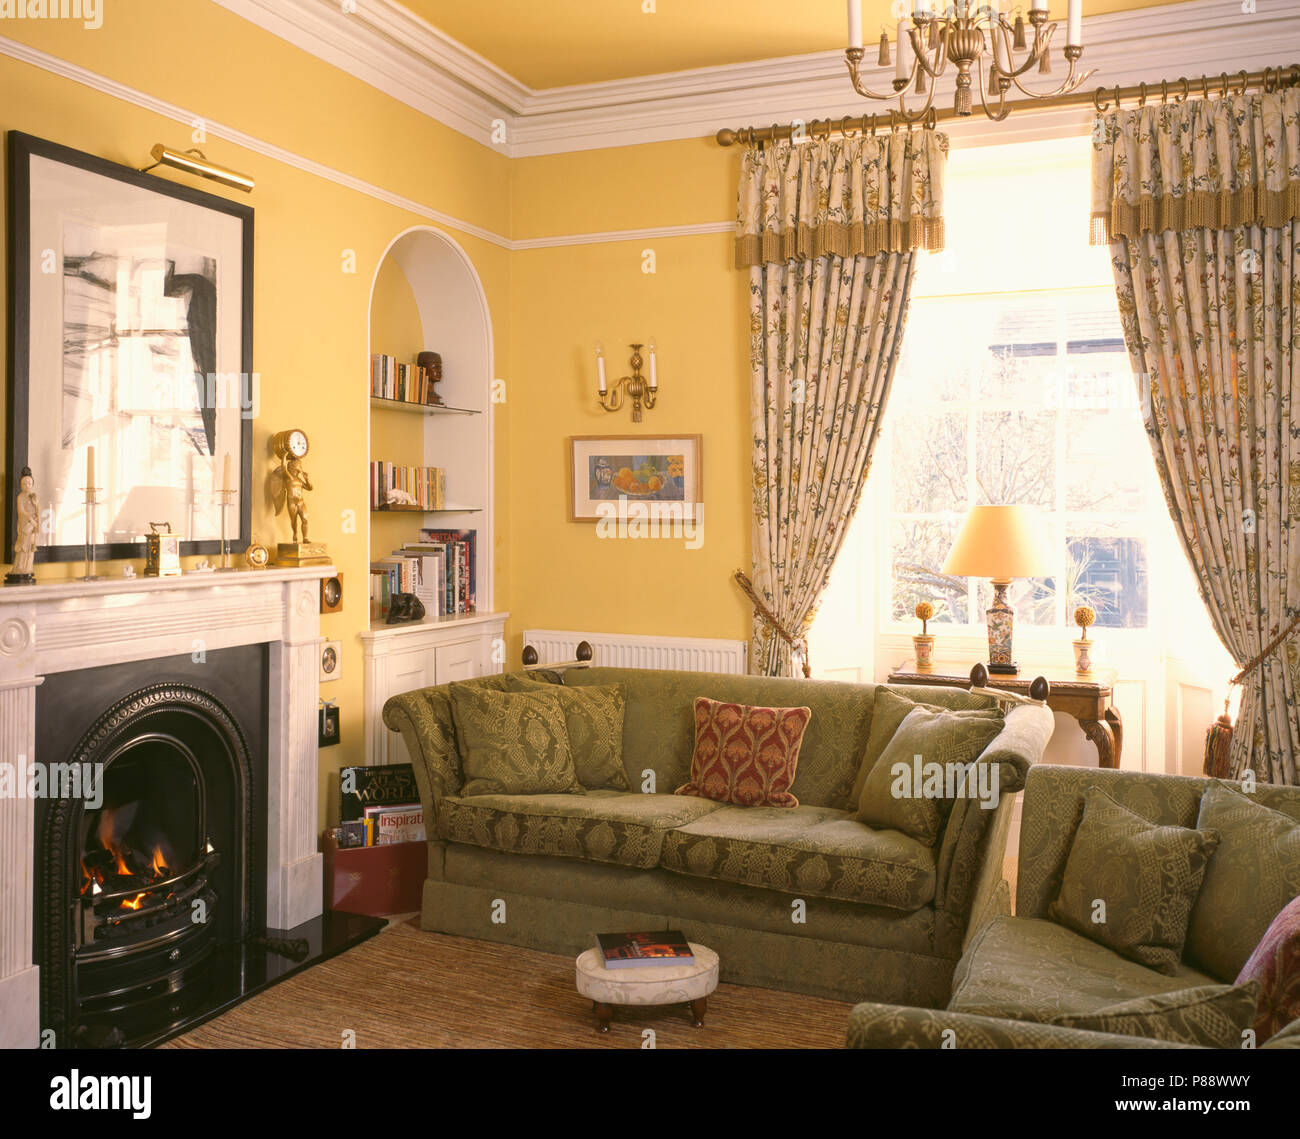 Patterned Curtains And Green Sofas Beside Fireplace In Yellow Livingroom